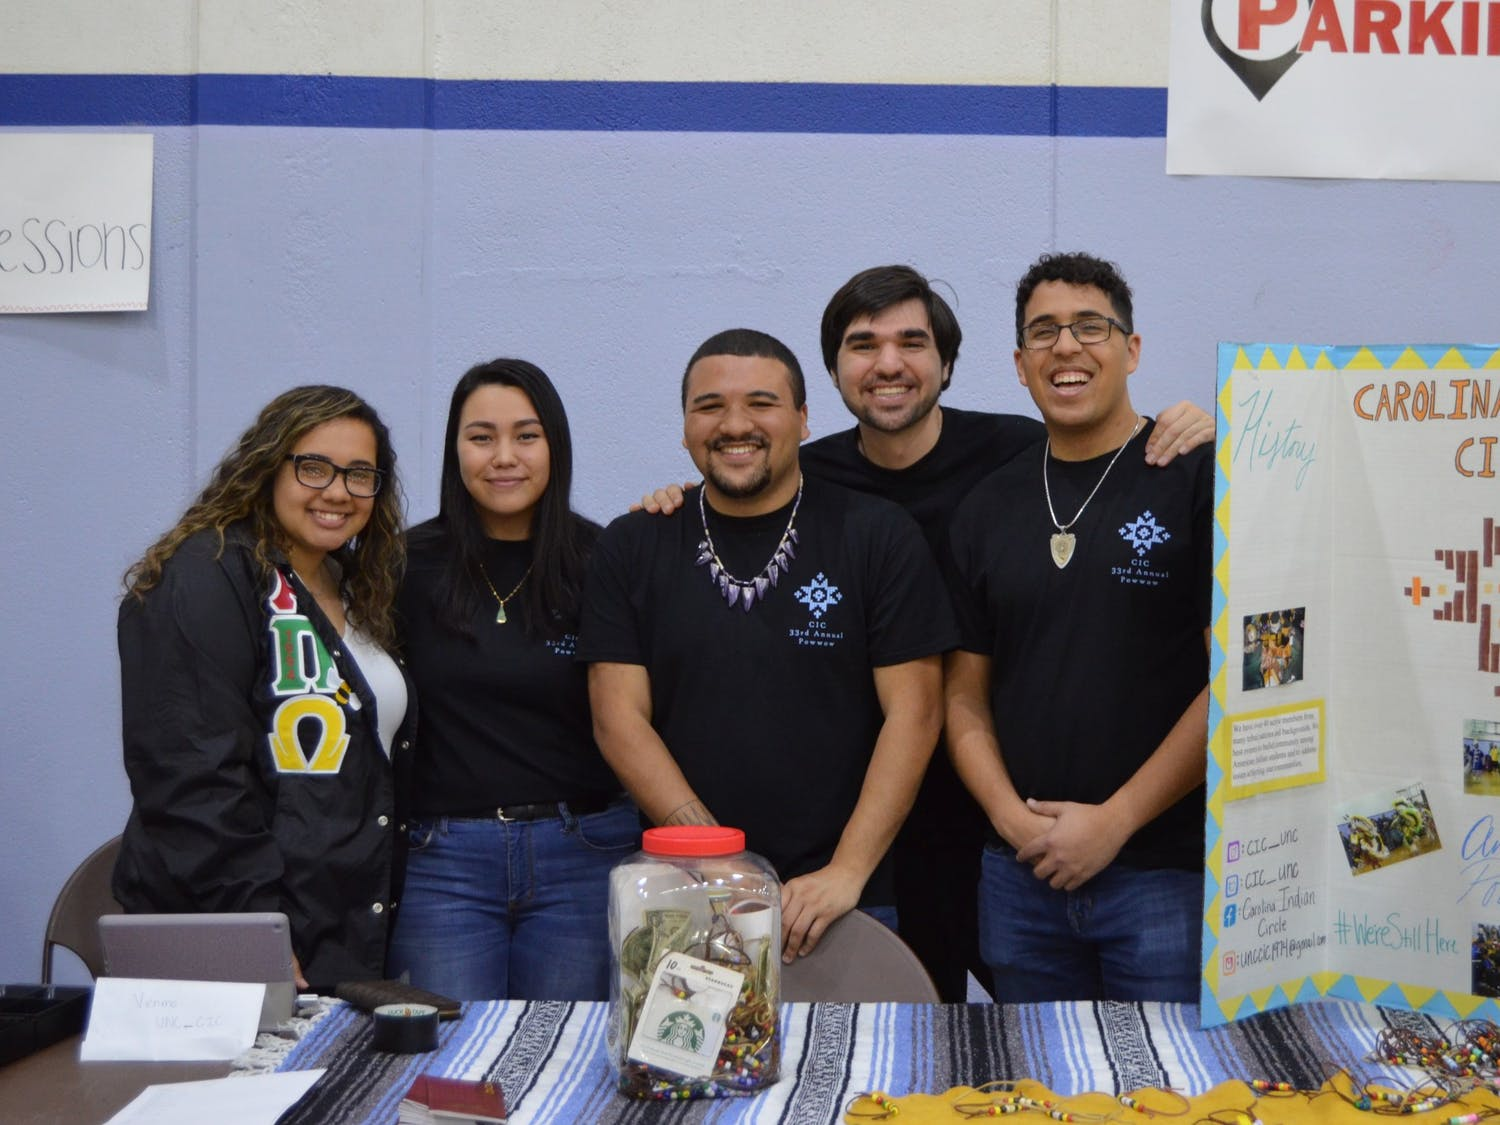 Carolina Indian Circle is one of the UNC cultural groups that are finding new ways to virtually connect with their community amid the COVID-19 outbreak. Photo courtesy of Jamison Lowery.